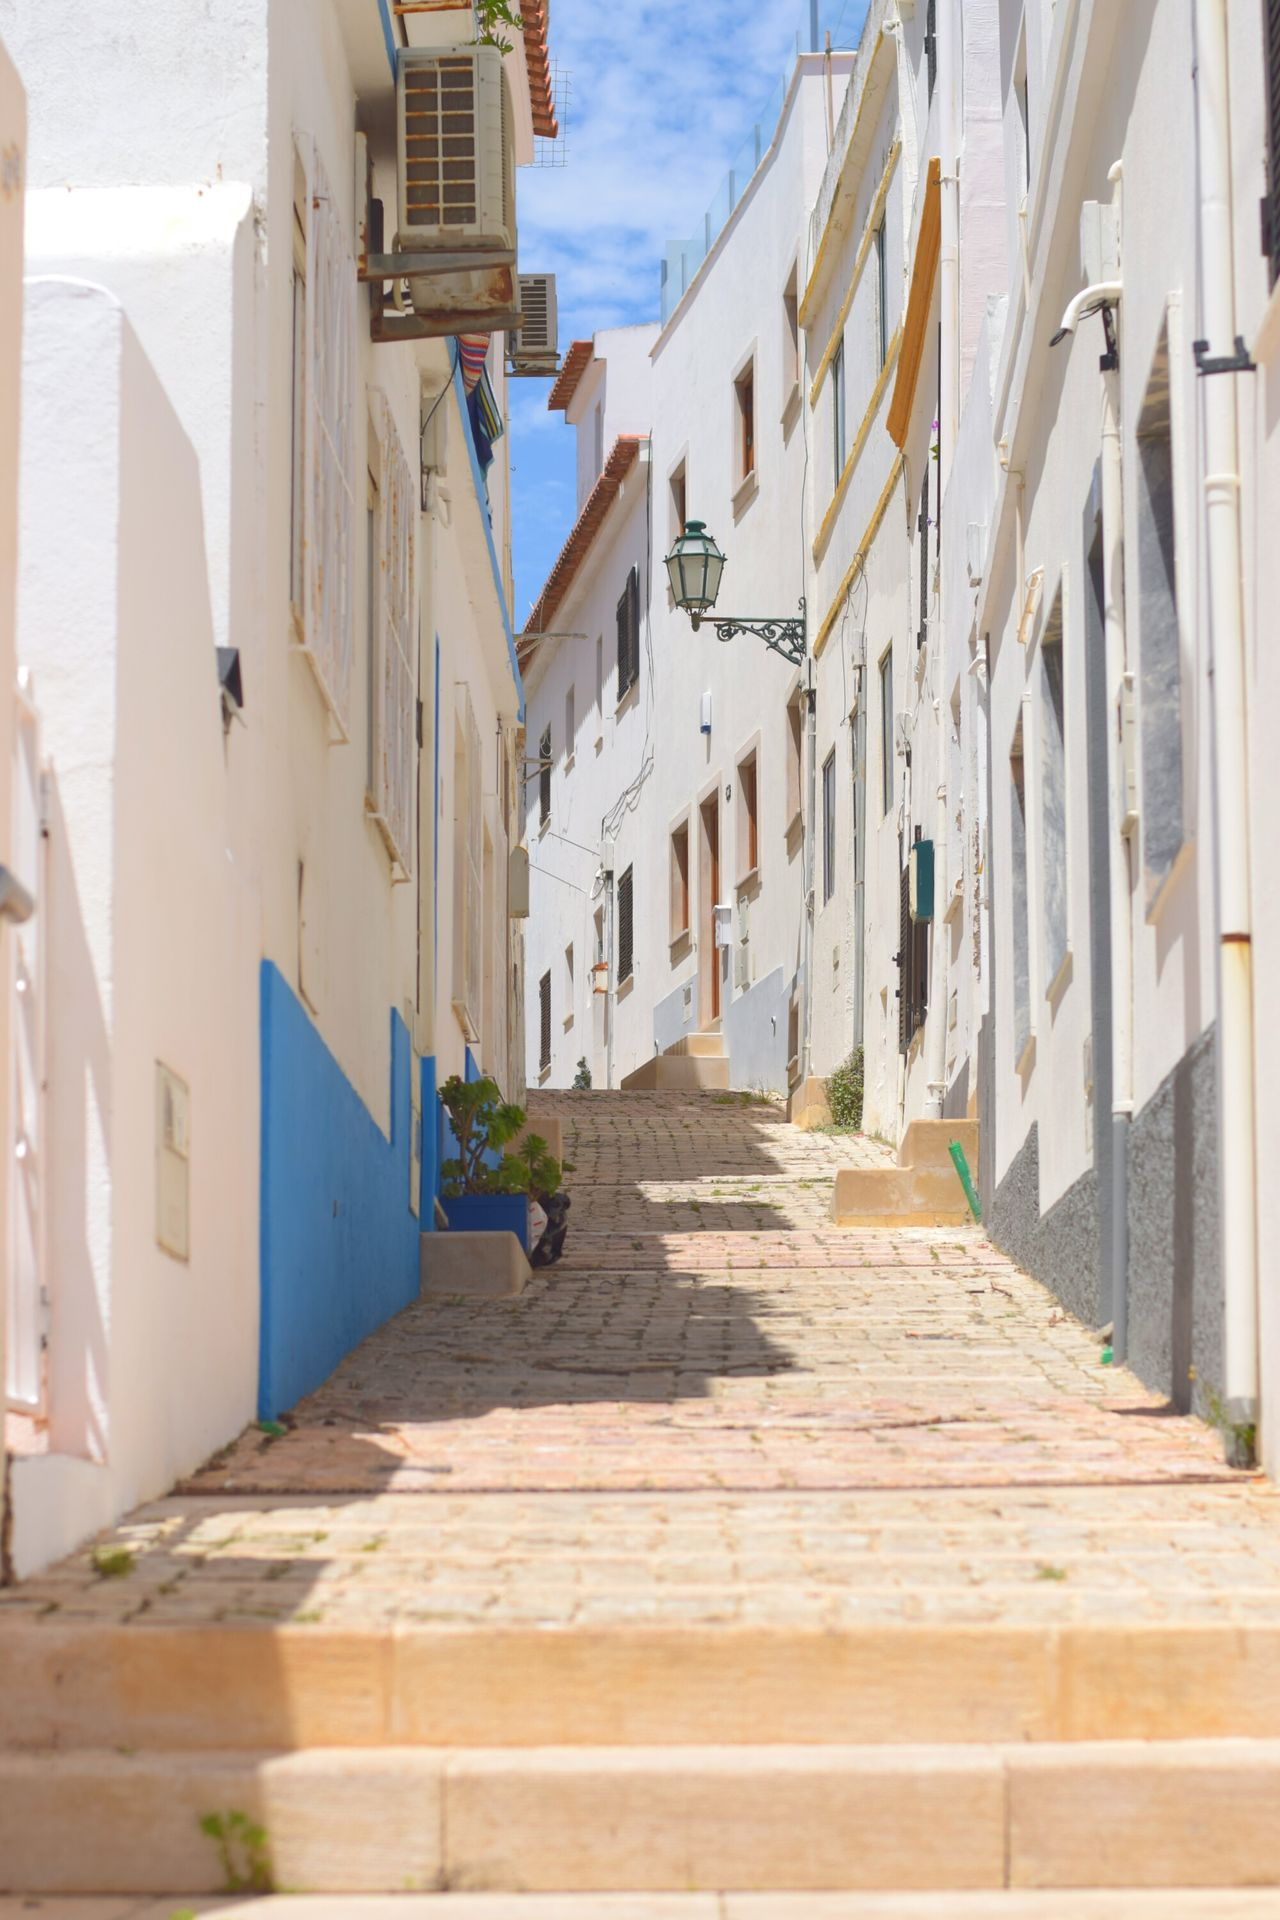 Beautiful stock photos of portugal, architecture, building exterior, built structure, outdoors